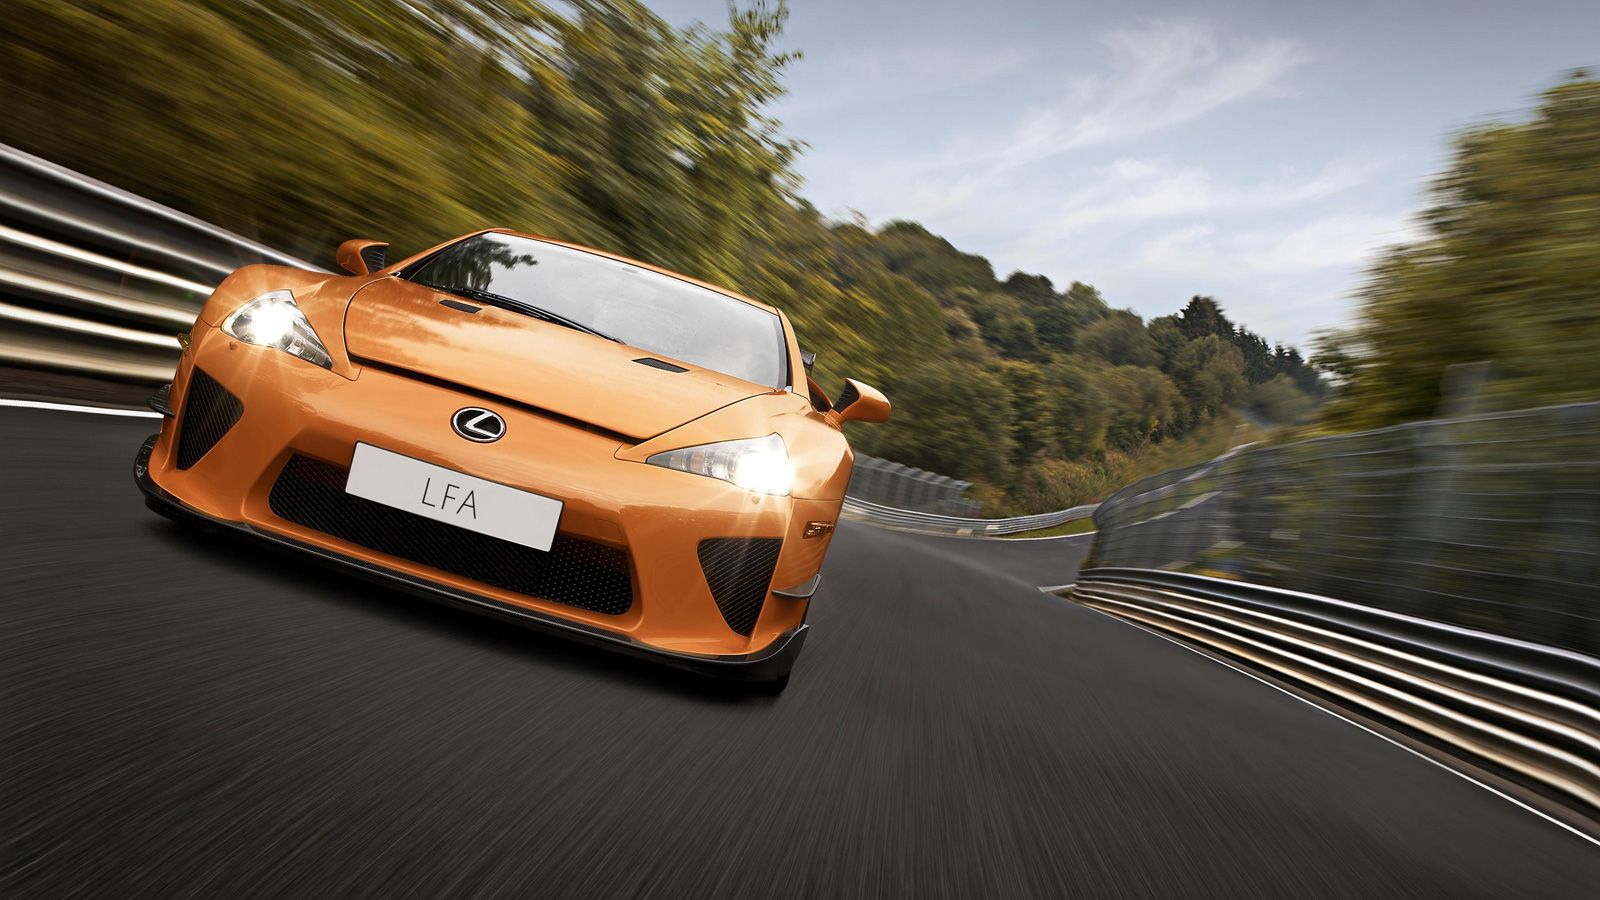 Your Ridiculously Cool Nurburgring Edition Lexus Lfa Wallpaper Is